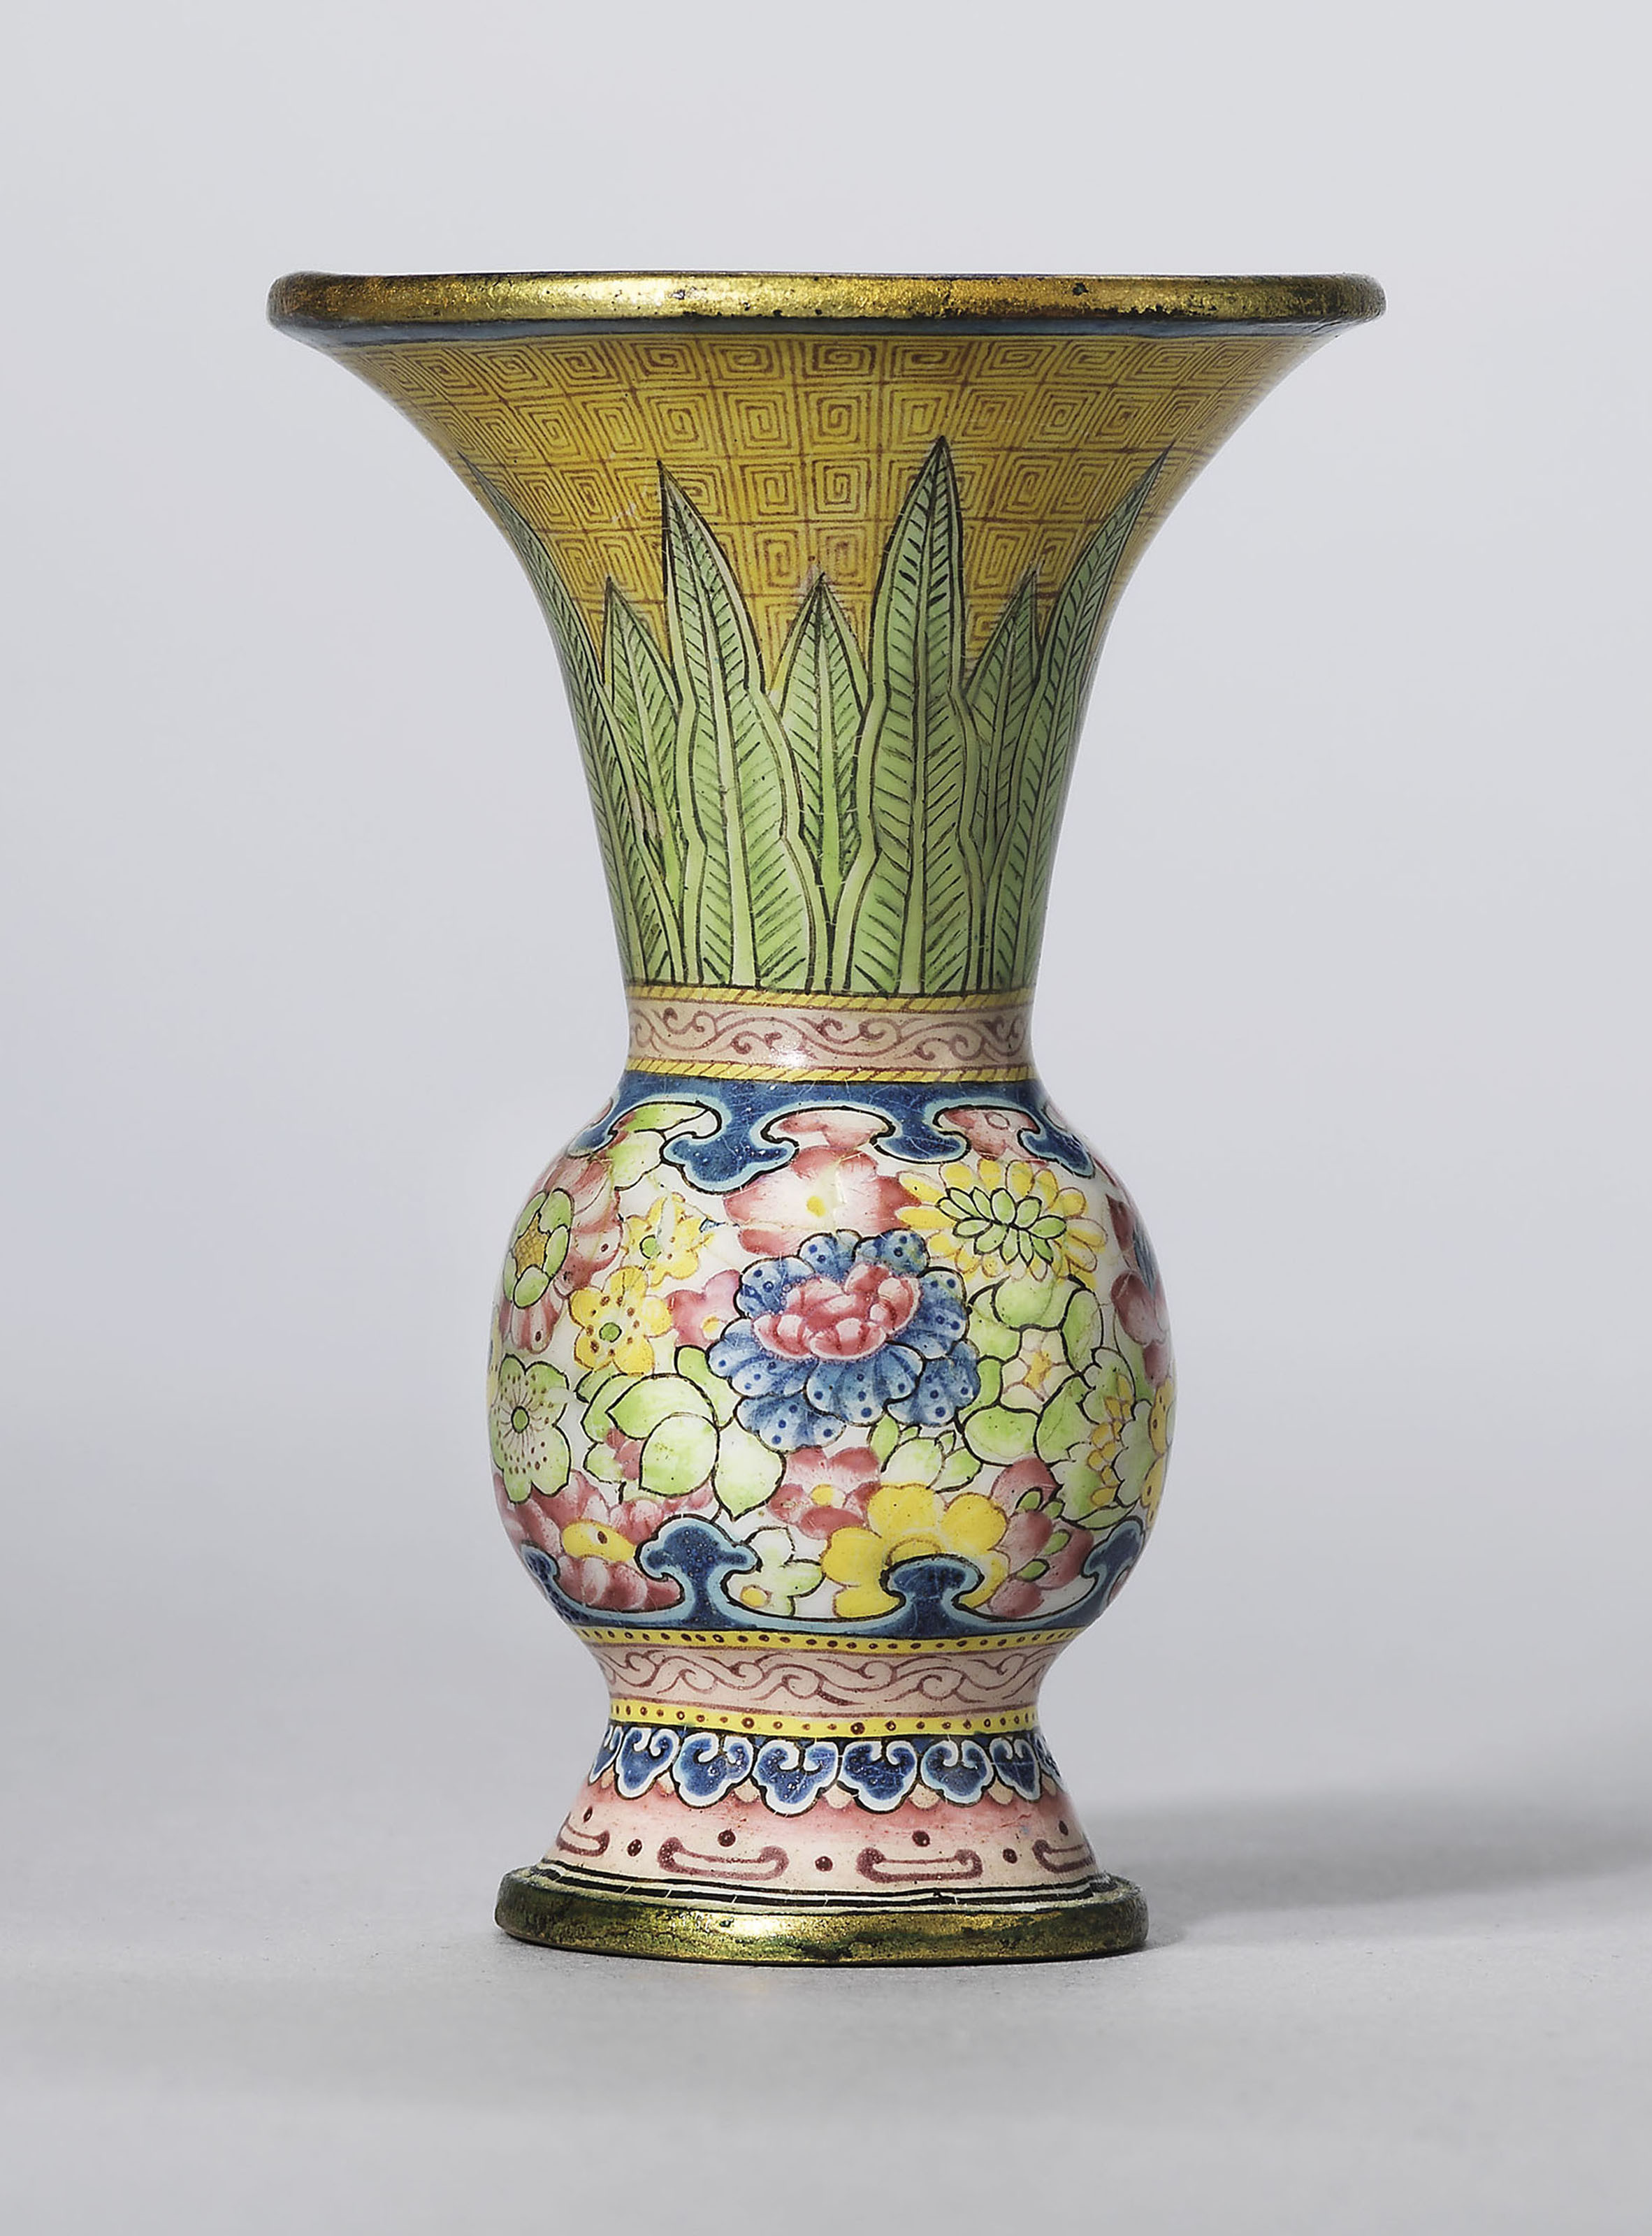 3 Feet Tall Vases Of A Guide to the Symbolism Of Flowers On Chinese Ceramics Christies Intended for A Rare Painted Enamel Gu Shaped Miniature Vase Qianlong Four Character Mark In